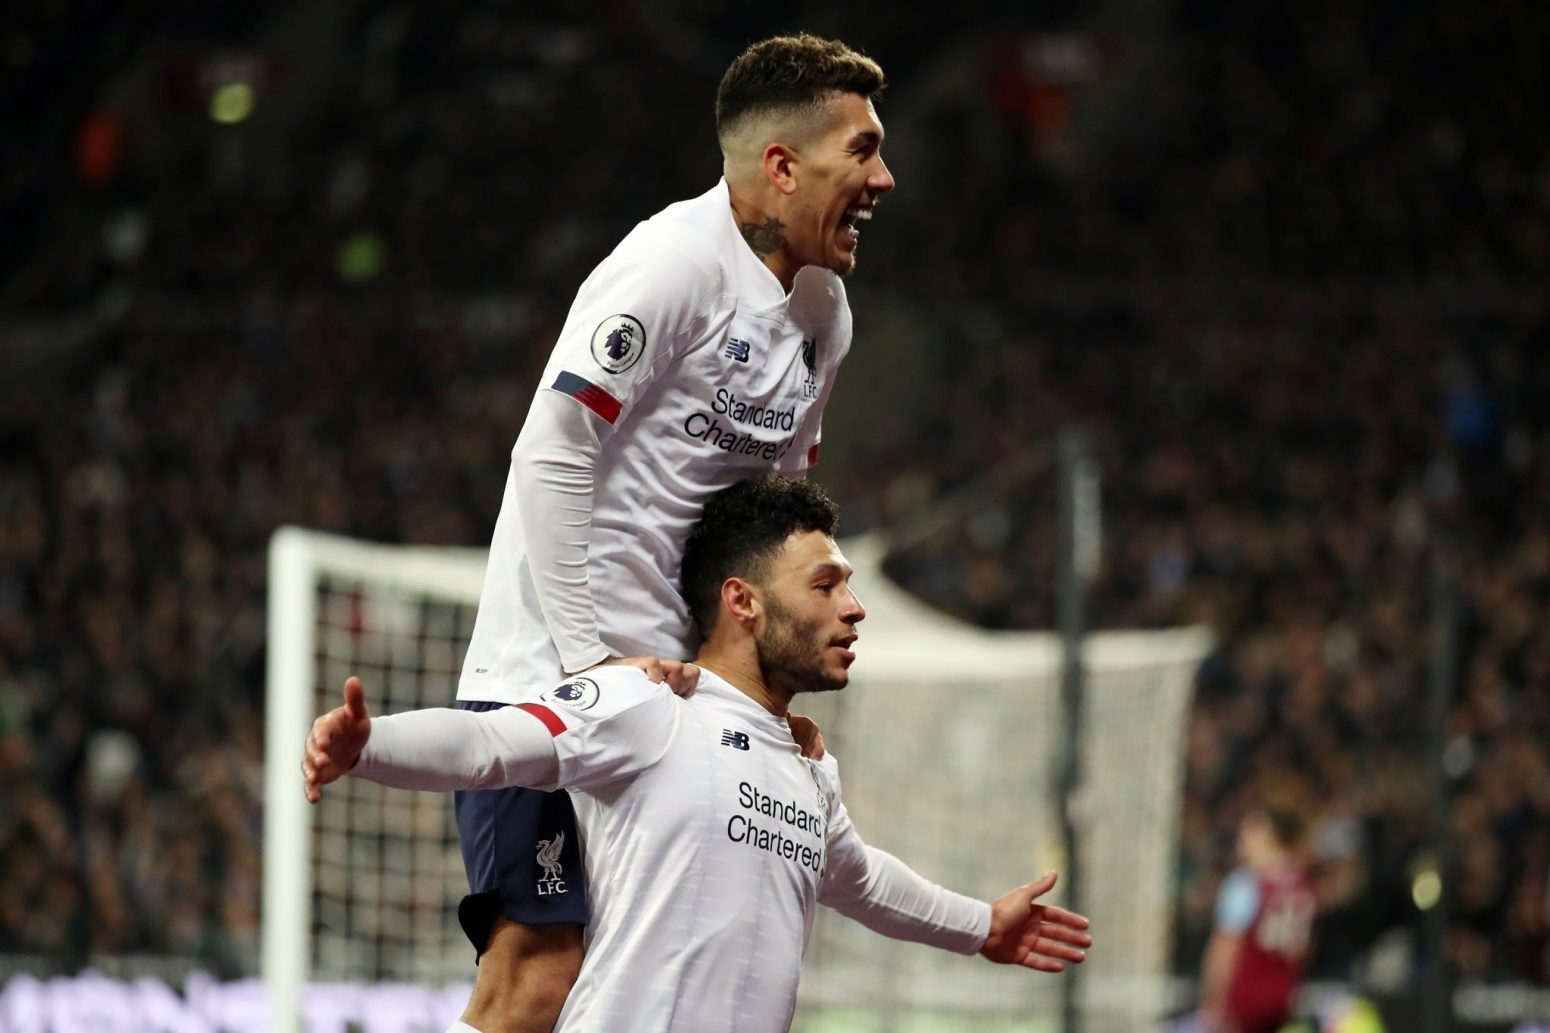 The best photos from London as Liverpool reach 70-point mark with West Ham win